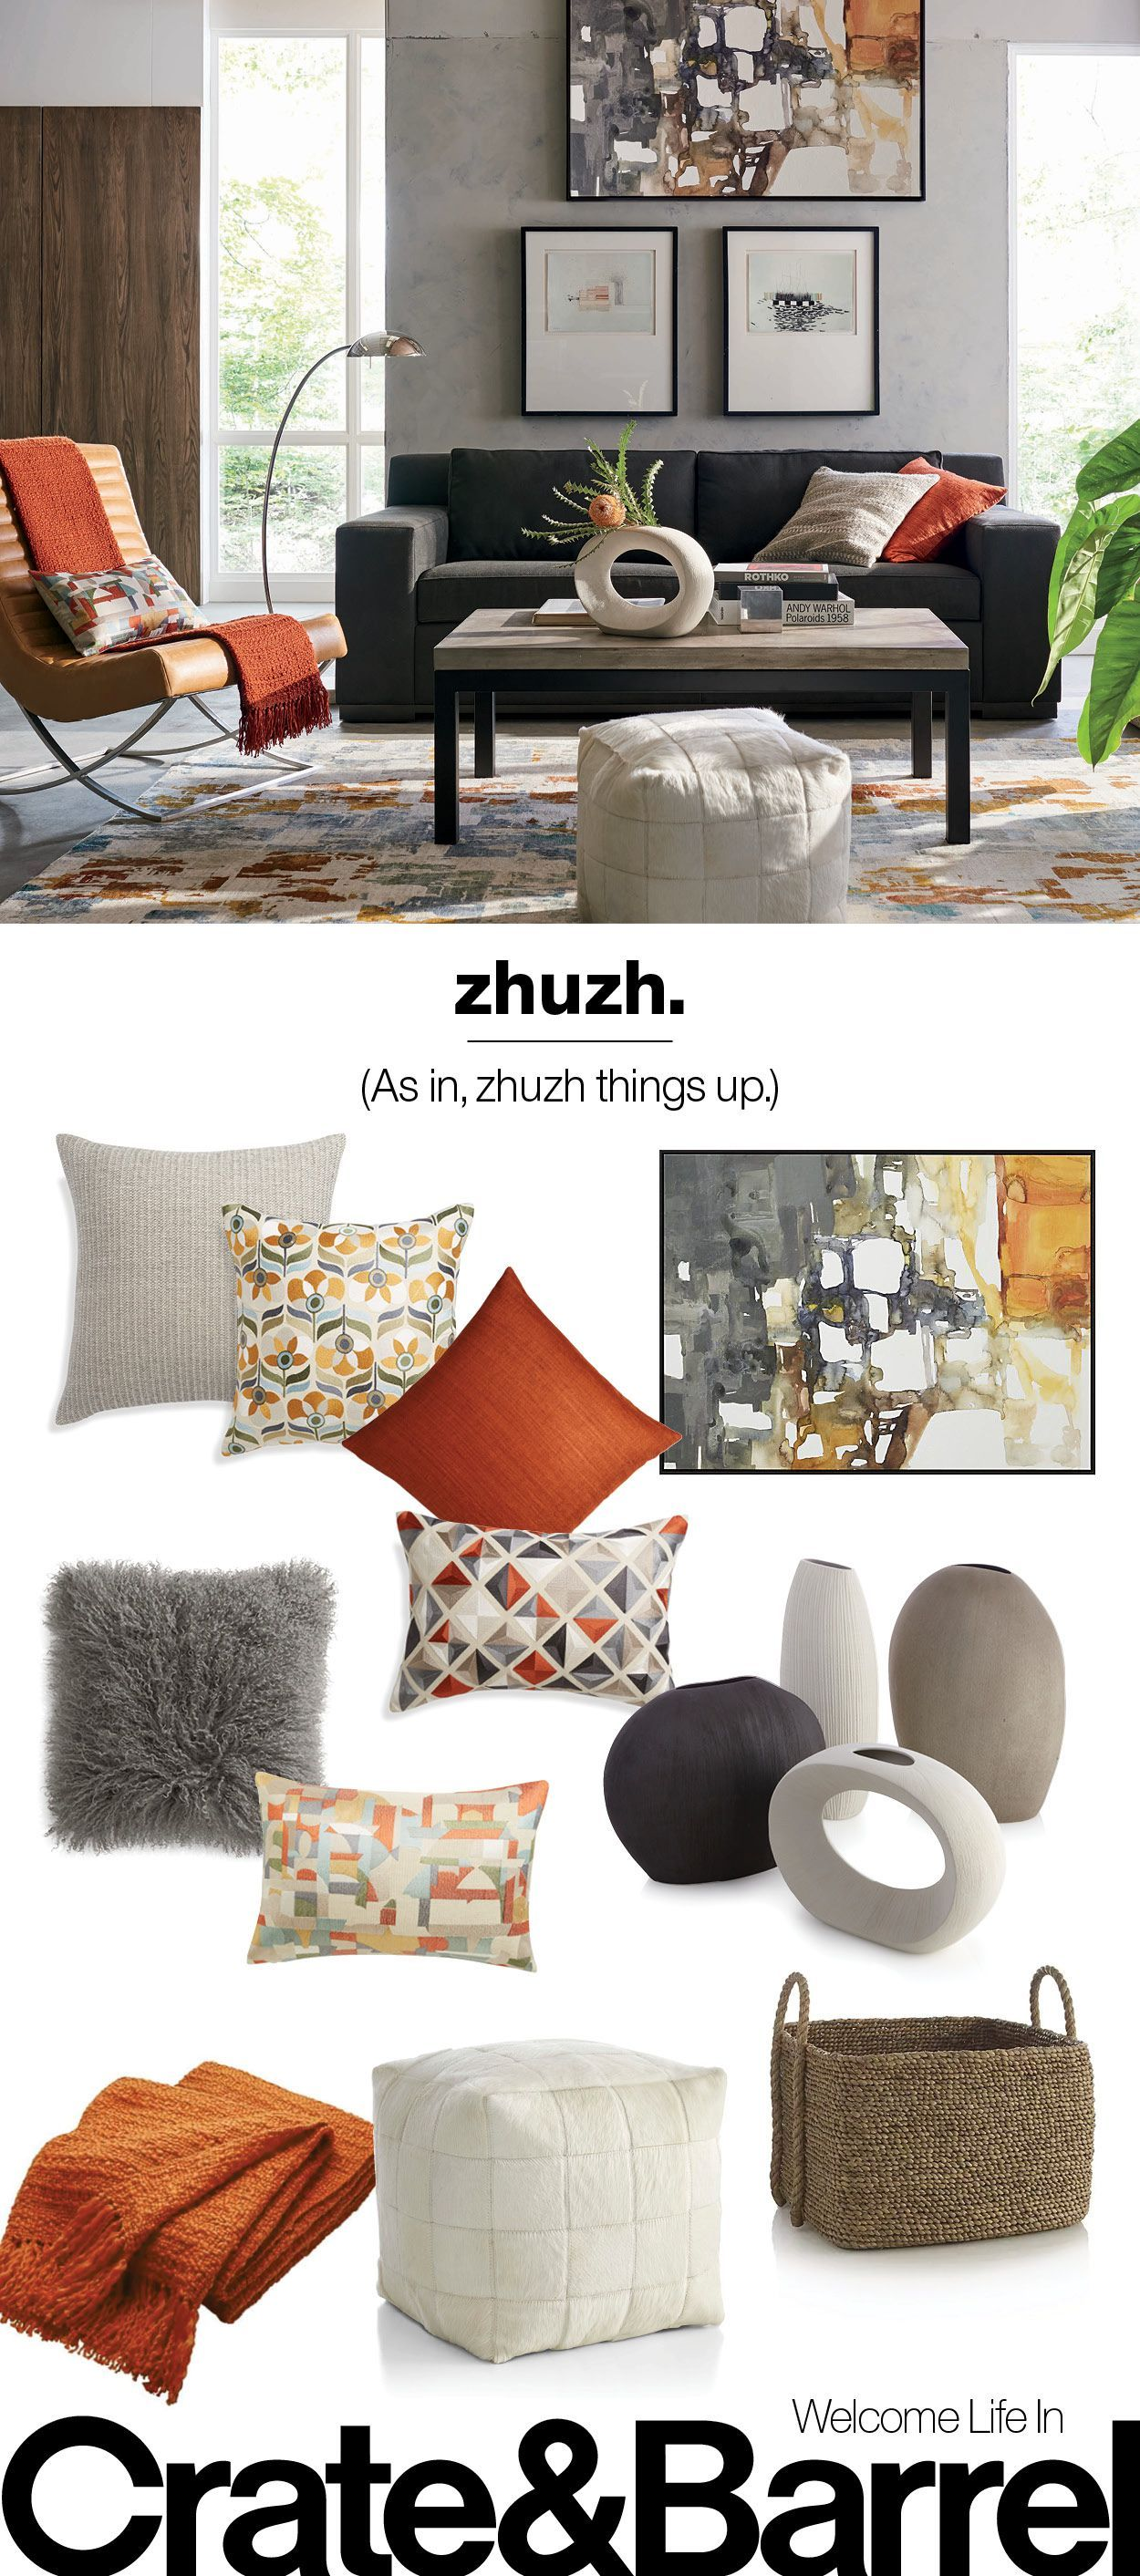 Our pillows baskets wall art and ceramics add a little something